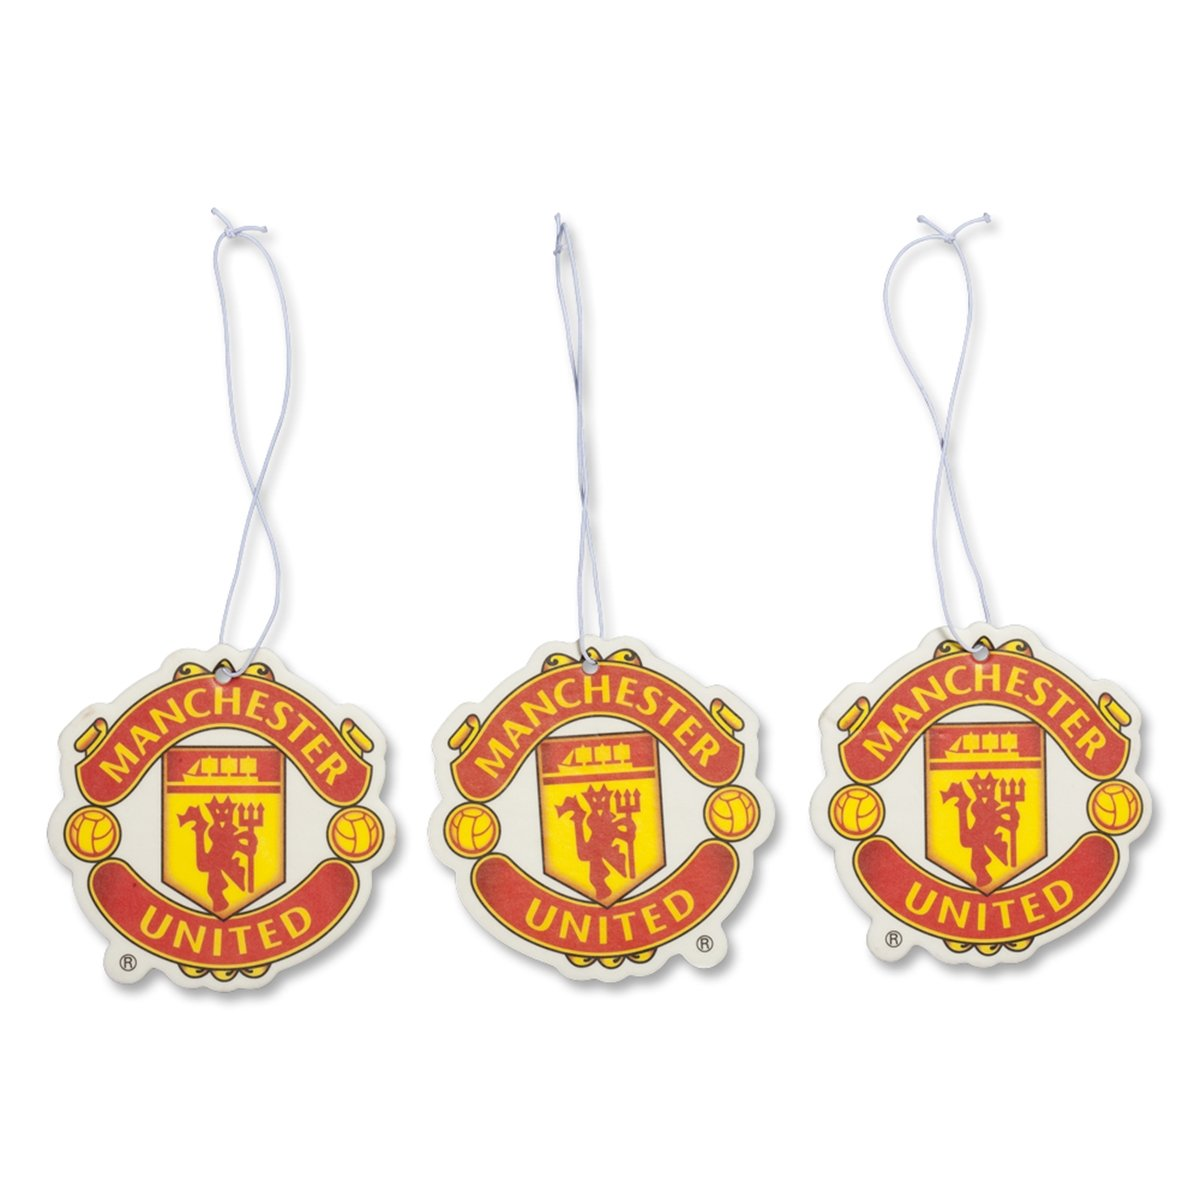 Manchester United FC Set of 3 Air Fresheners - Official Manchester United Product - Great For All MUFC Soccer Fans - Use in Your Car, Boat or Locker - Features Team Colors and Crest - Man Utd Soccer Football Source Inc.